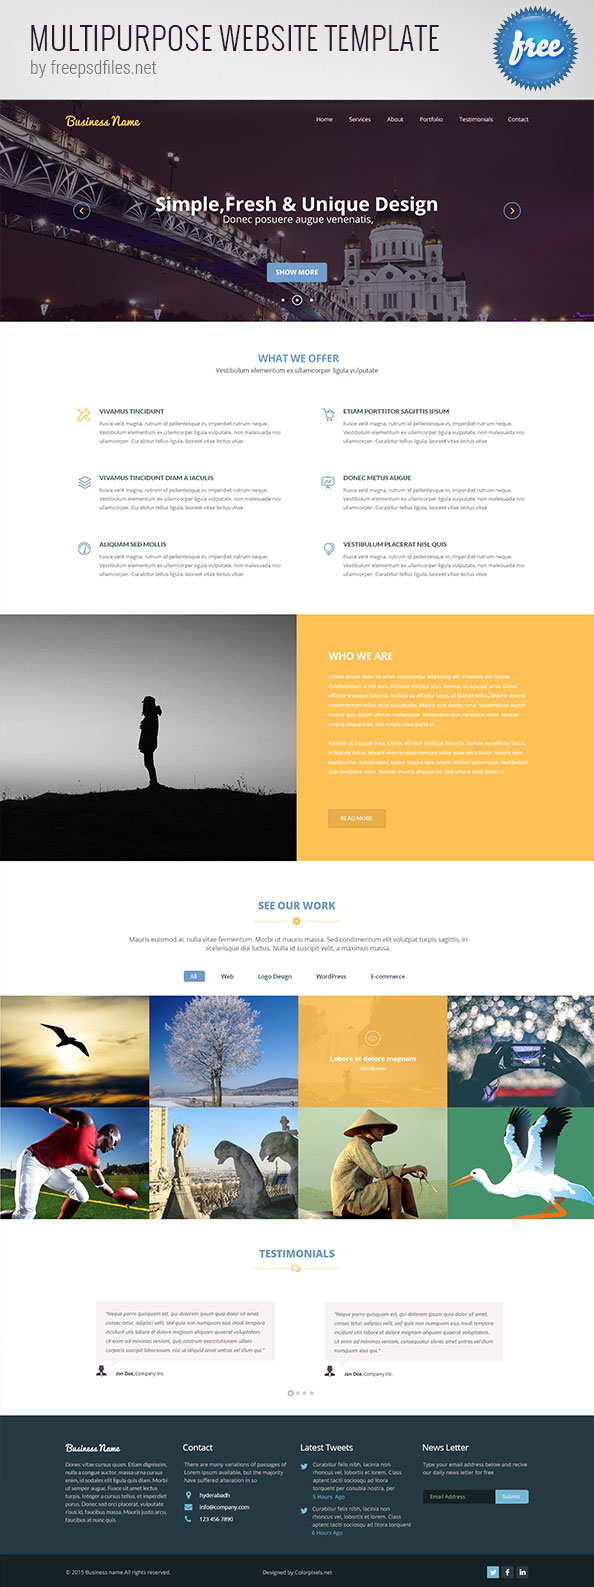 Free PSD Multipurpose Website Template